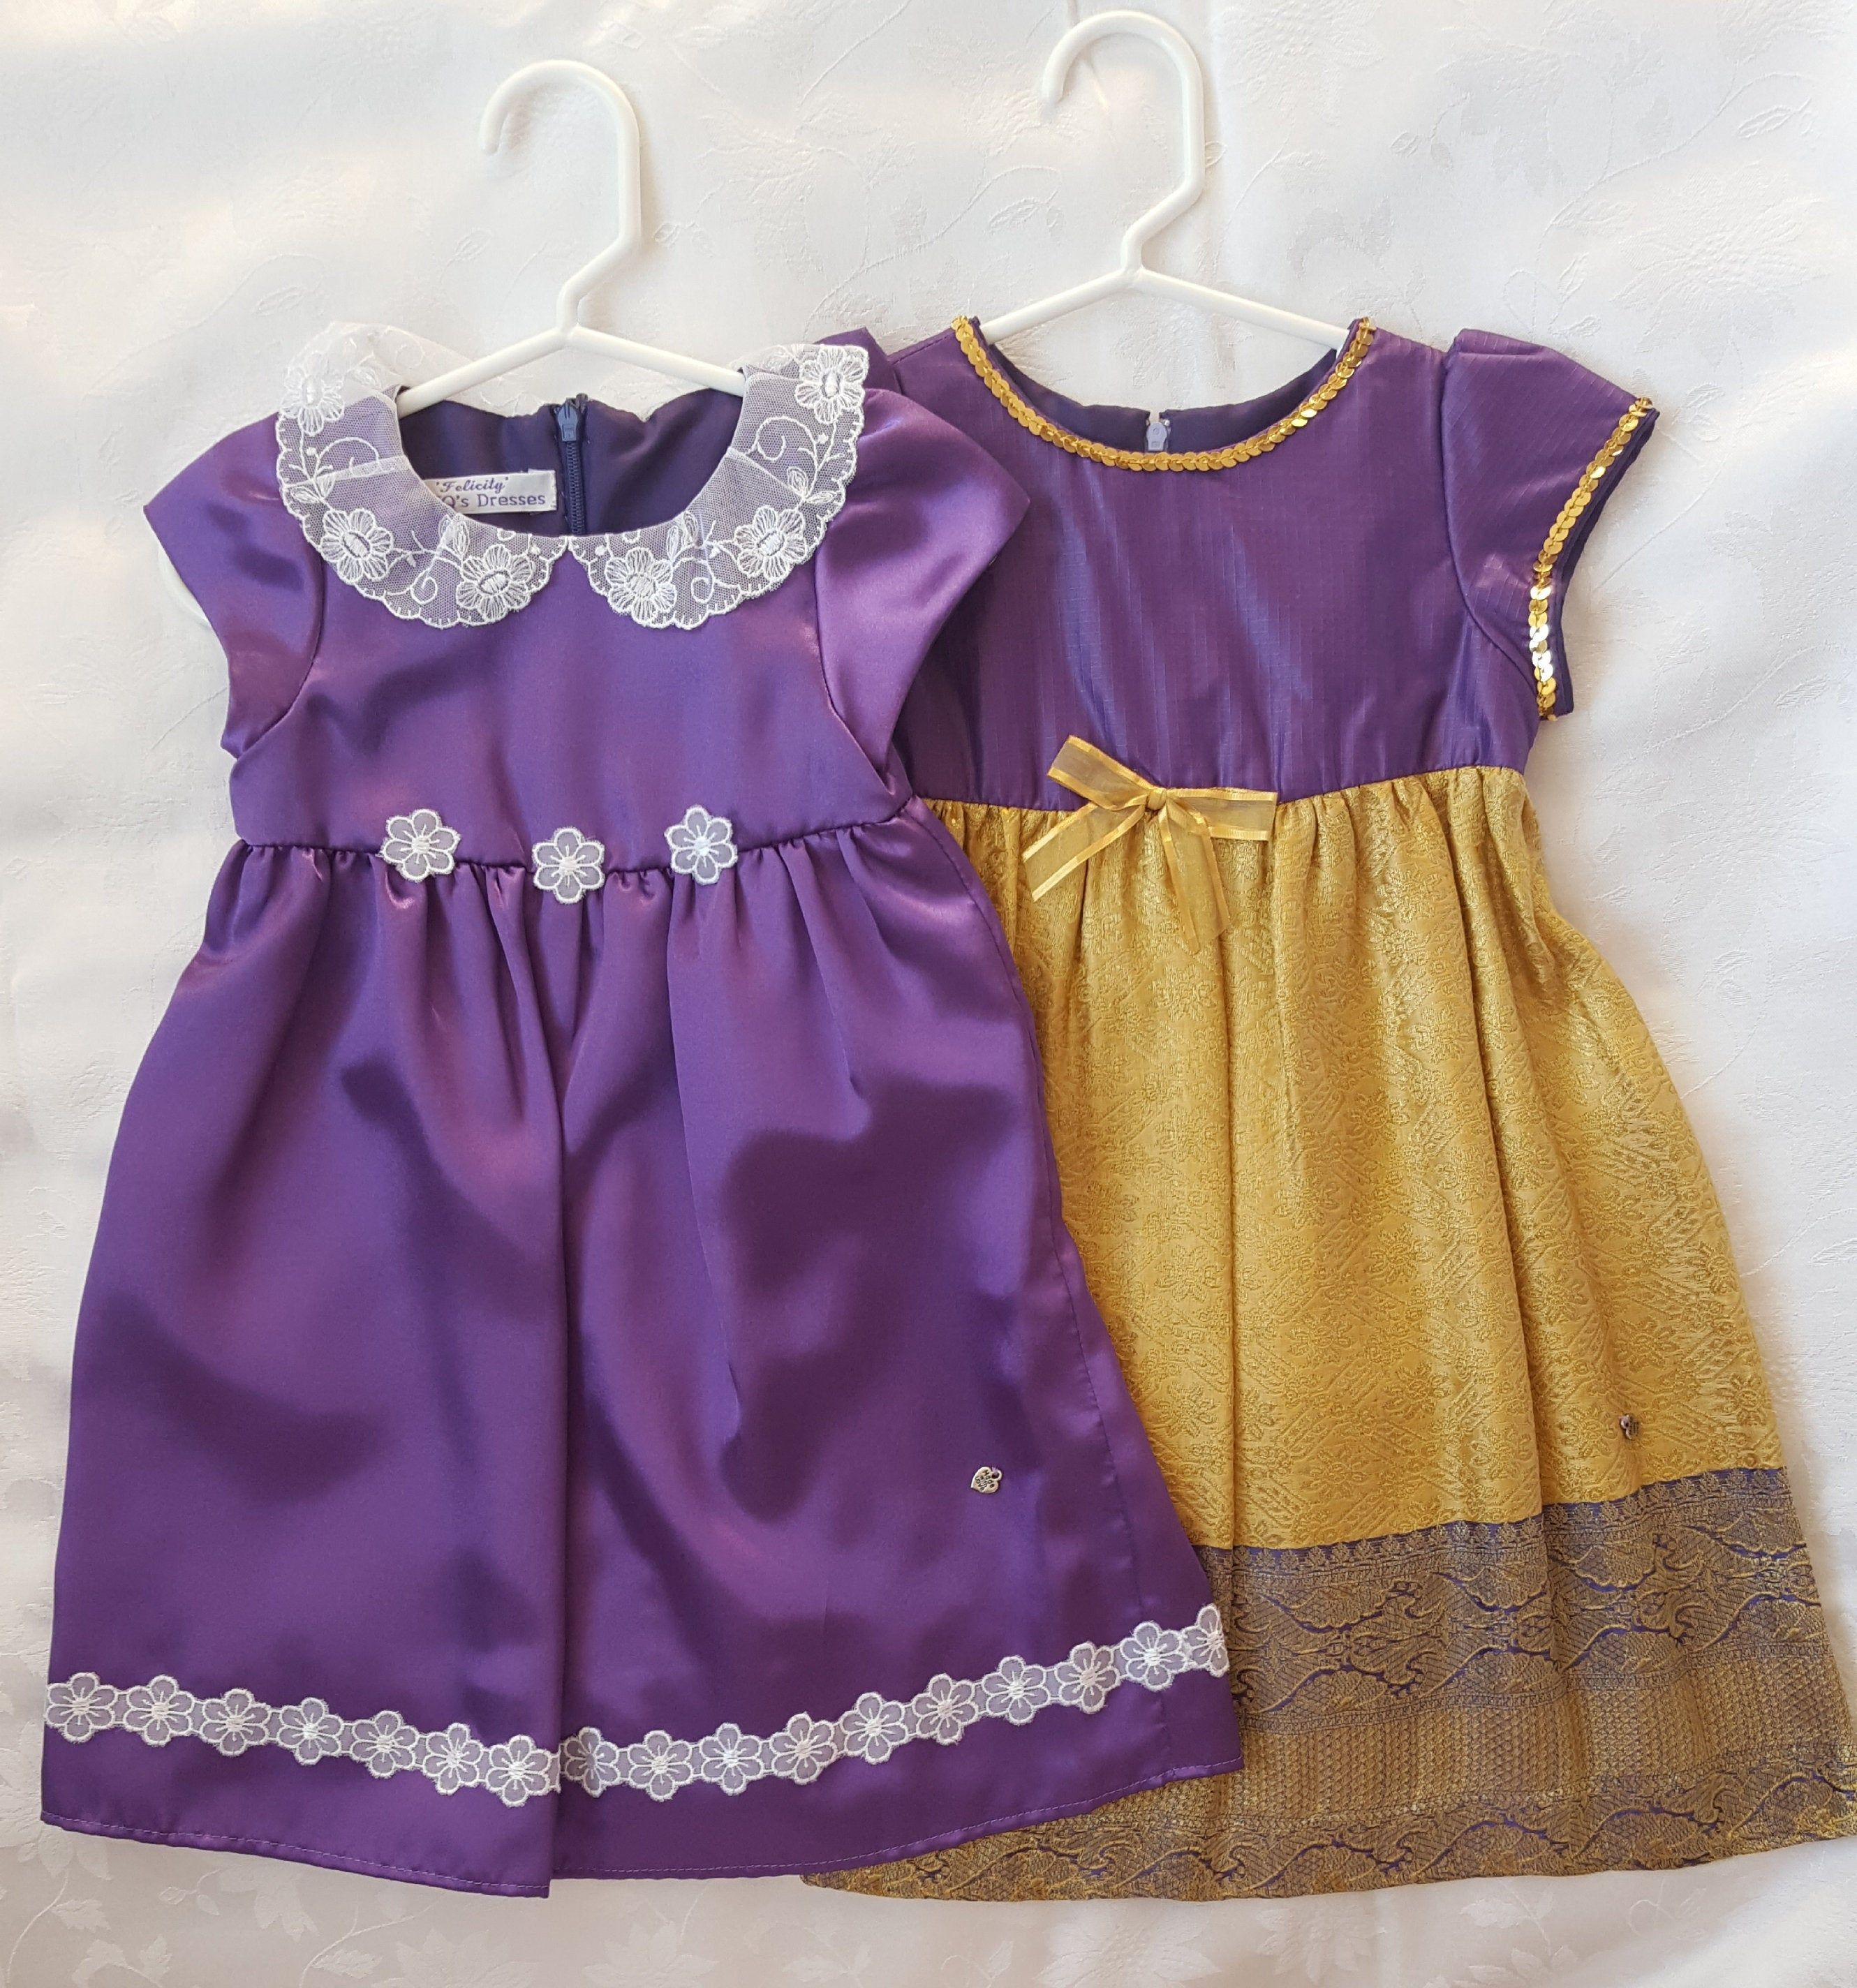 Items similar to Baby Girl Special Occasion Dresses. Purple Satin Traditional Dresses. Baby Wedding, Birthday Party Dress. on Etsy